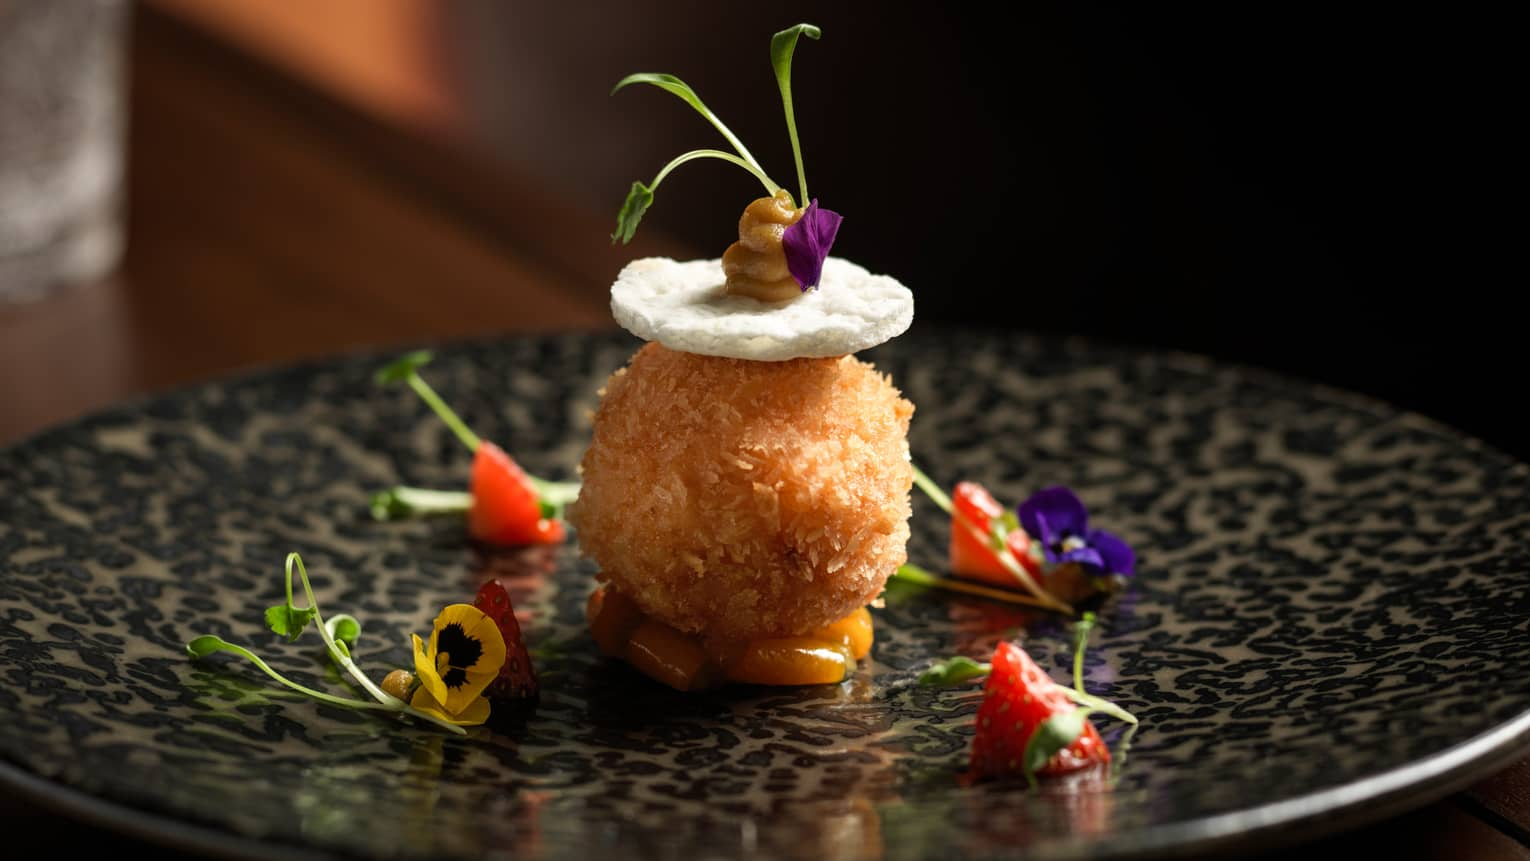 Mei Ume restaurant's croquette with pansies and strawberry tips